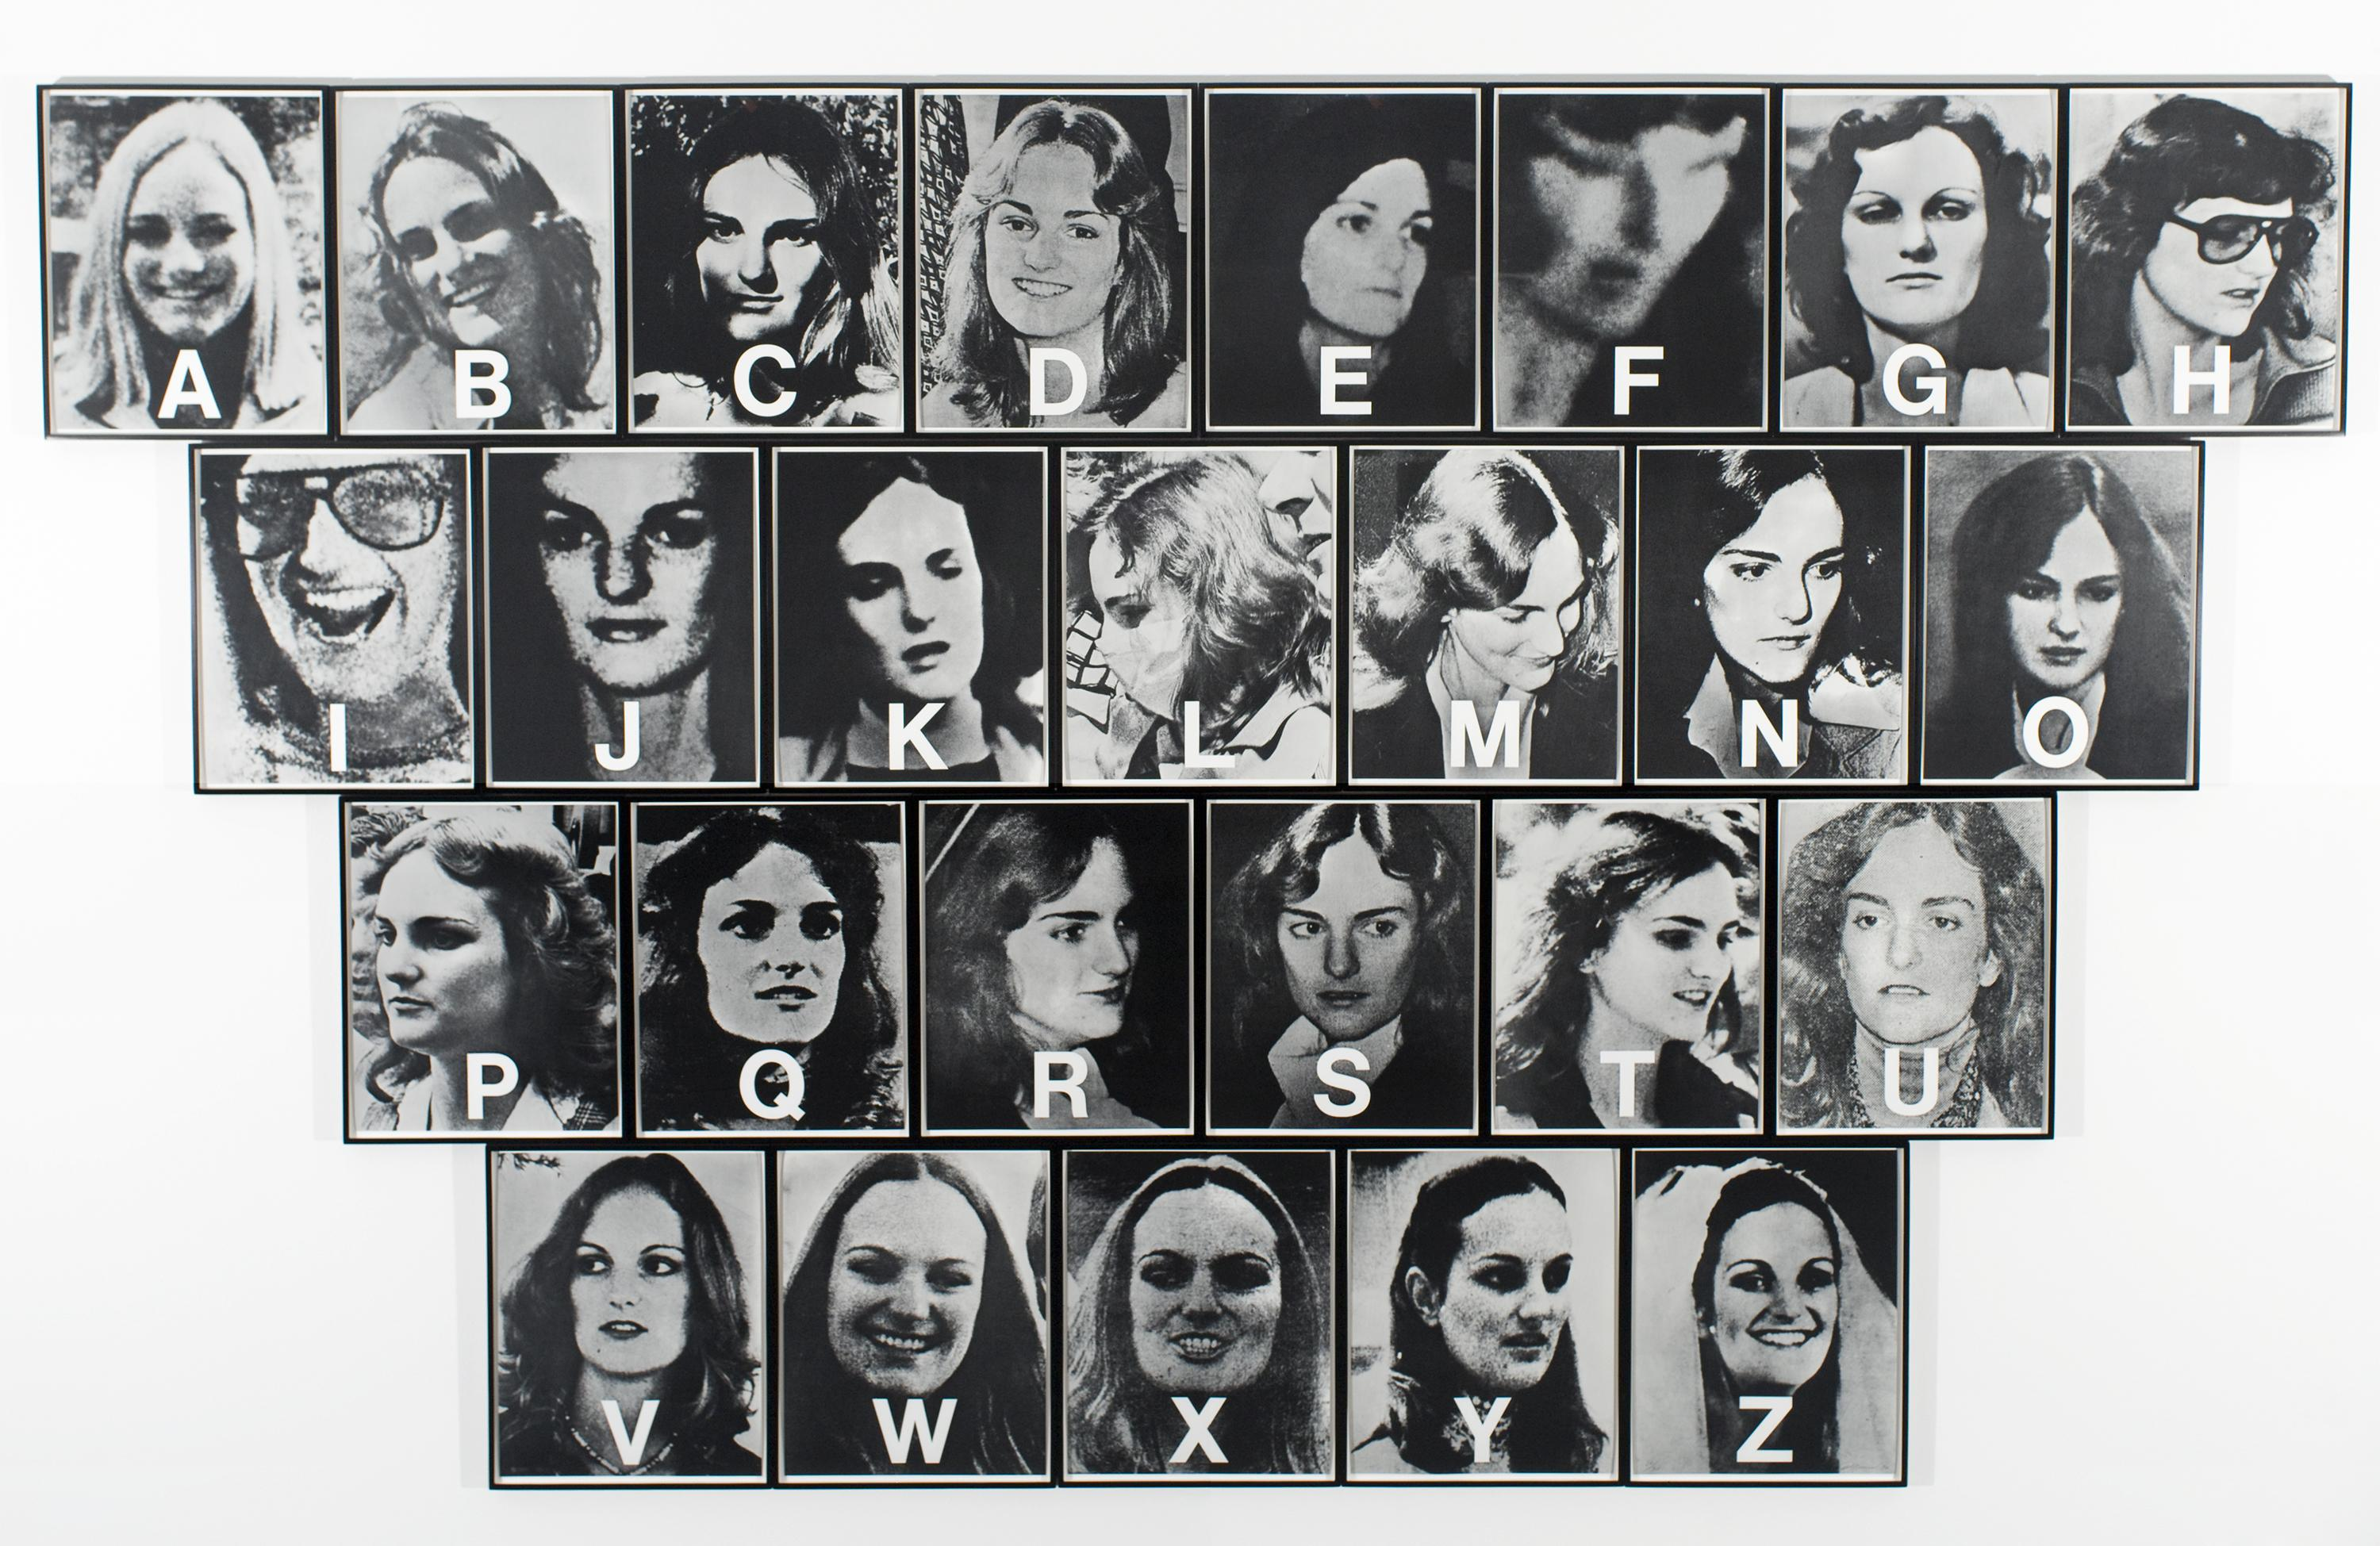 Twenty six black-and-white photographs of Patricia Hearst in four rows, with a letter of the alphabet—from A to Z—in white superimposed over each one.